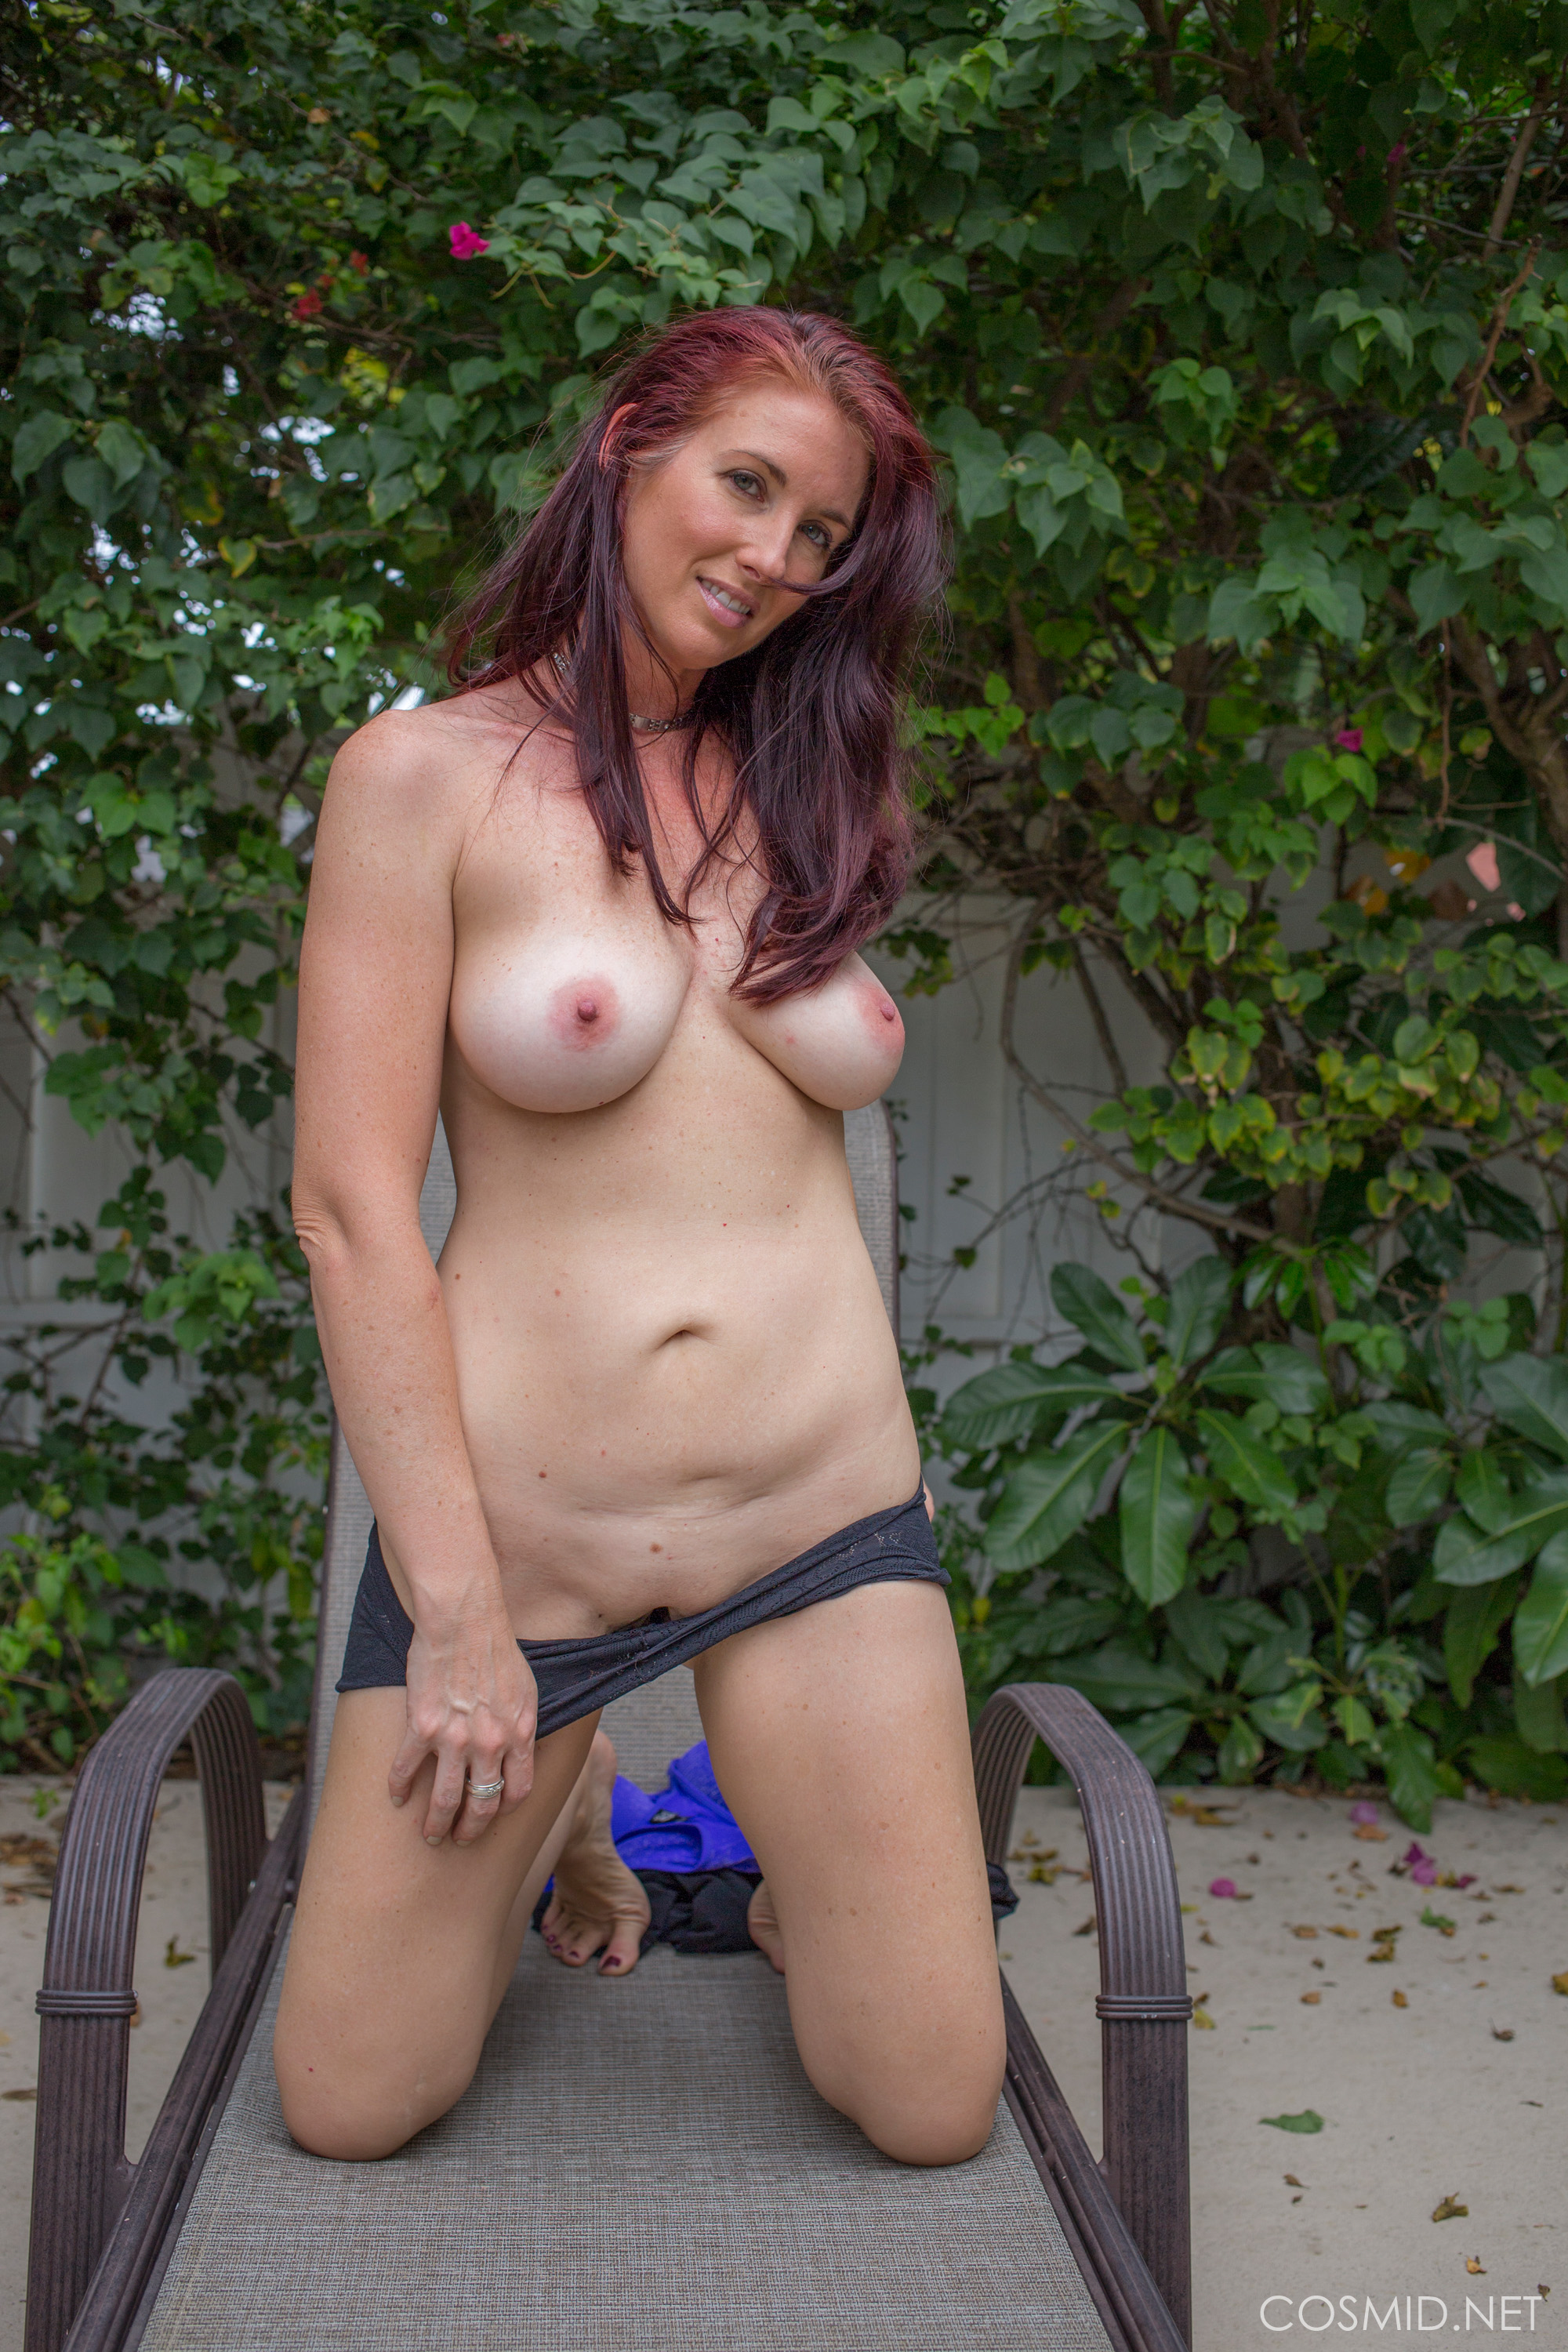 Welcome to Cosmid - Sexy Amateurs, Busty Amateurs ...